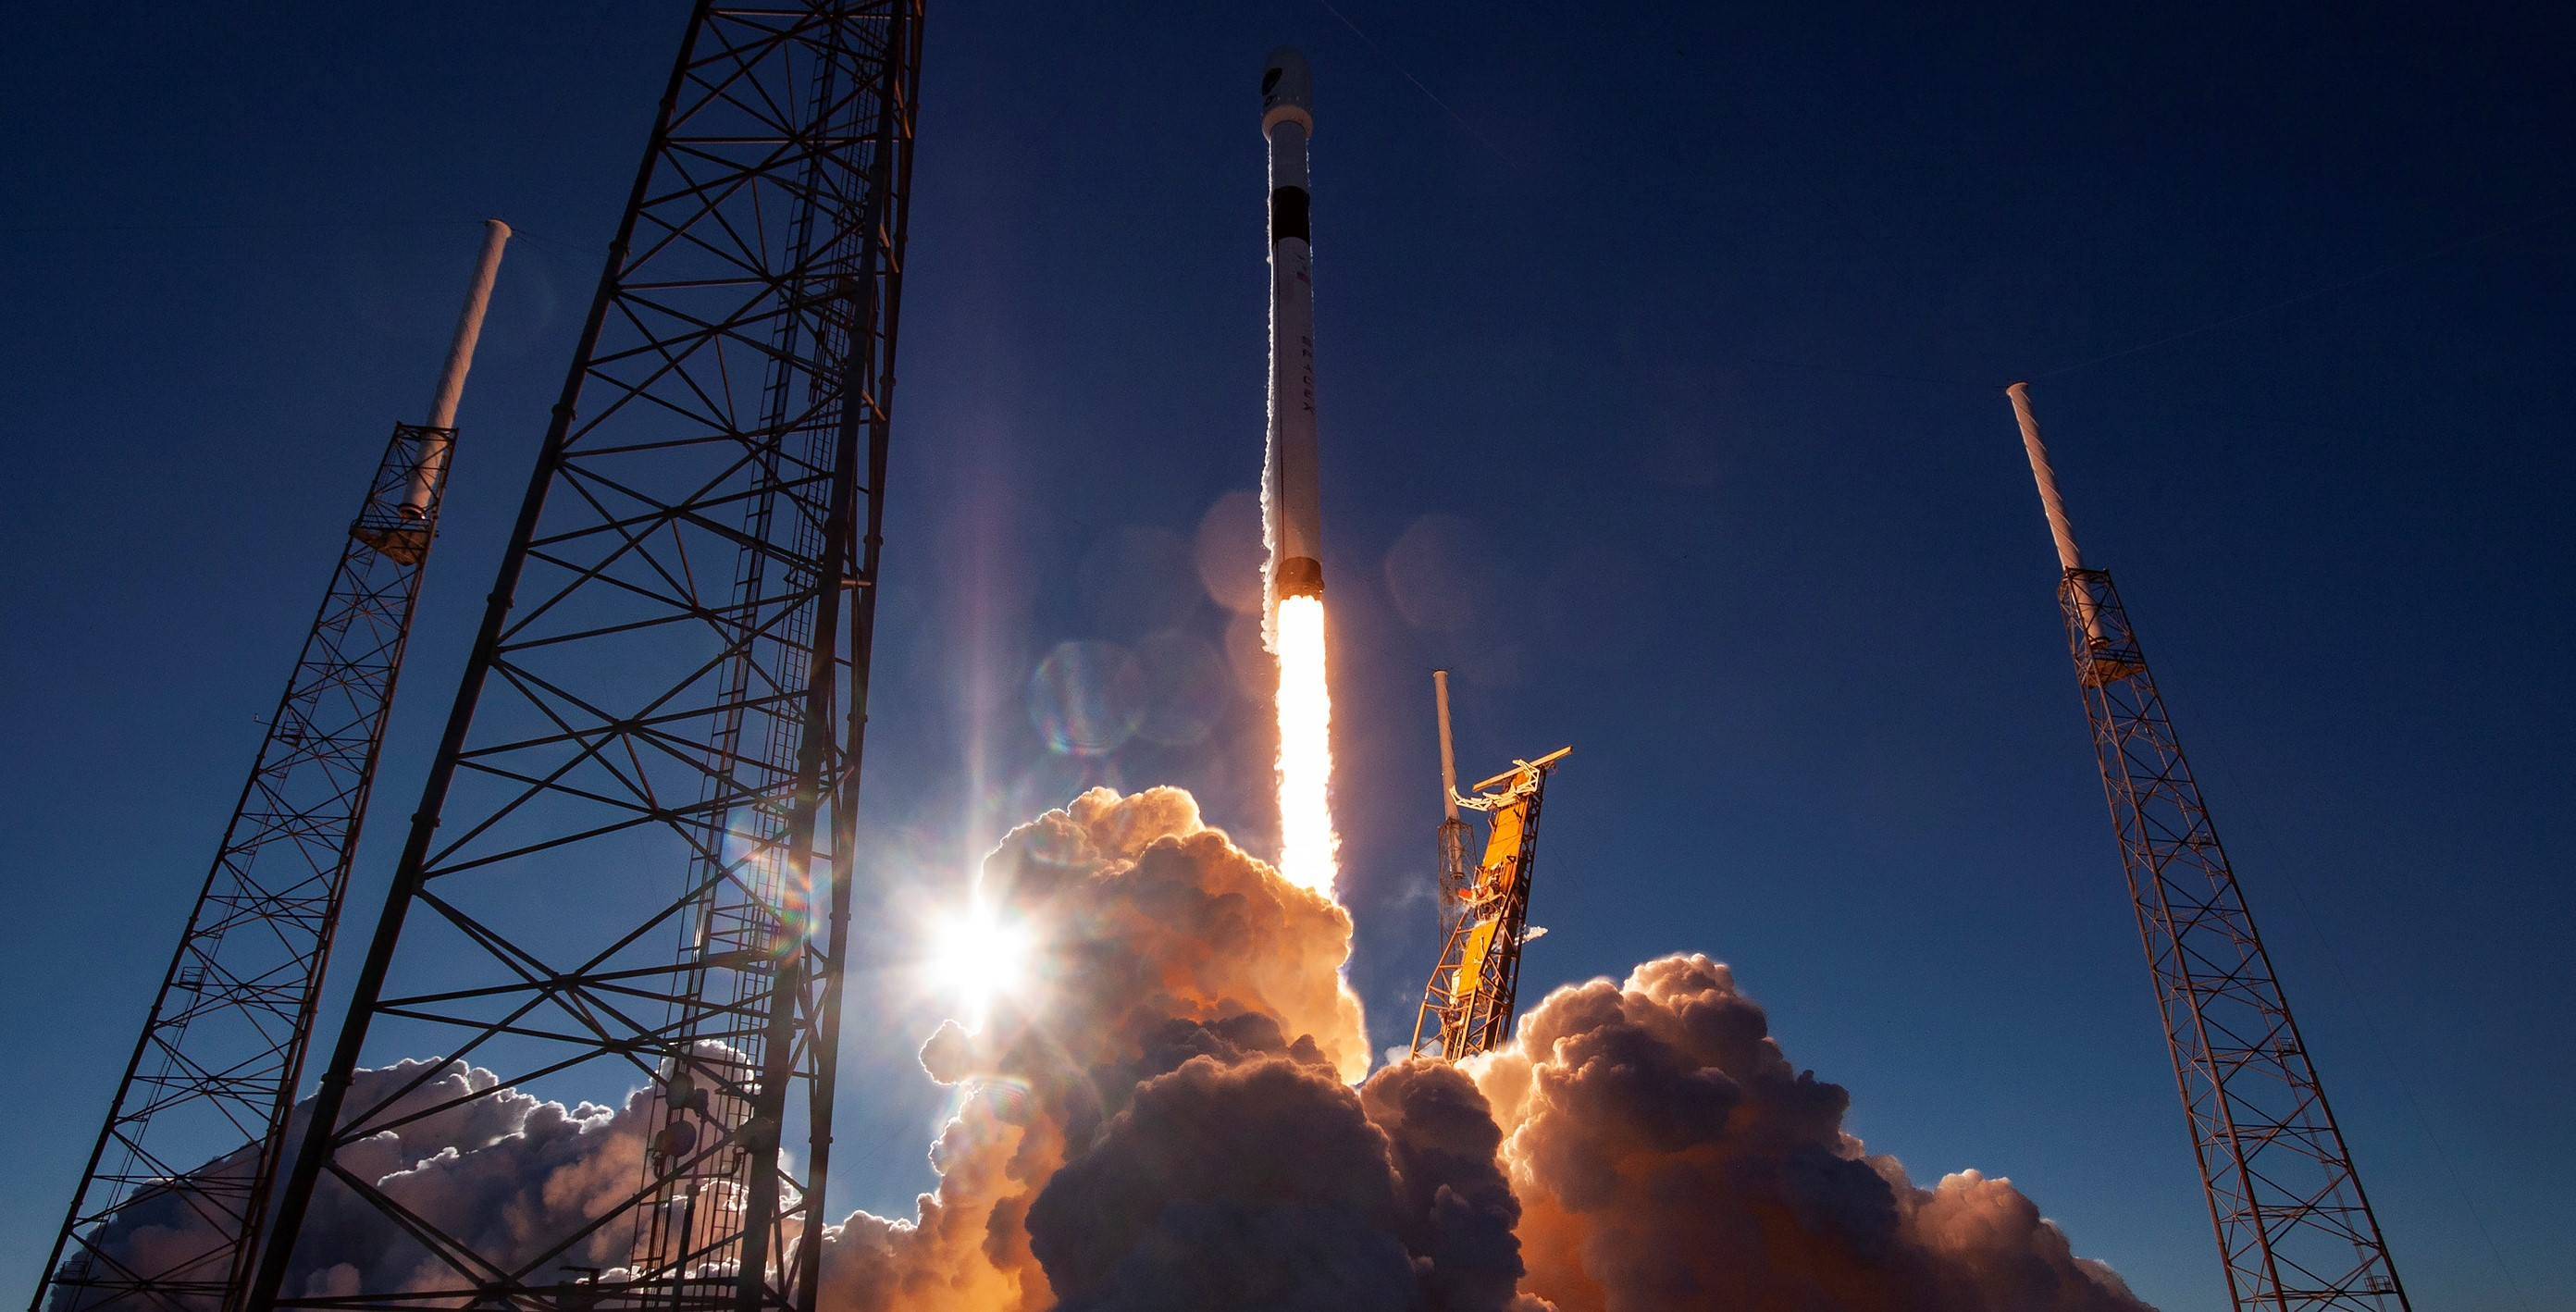 Falcon 9 B1054 GPS III SV01 liftoff (SpaceX) 5 crop 2